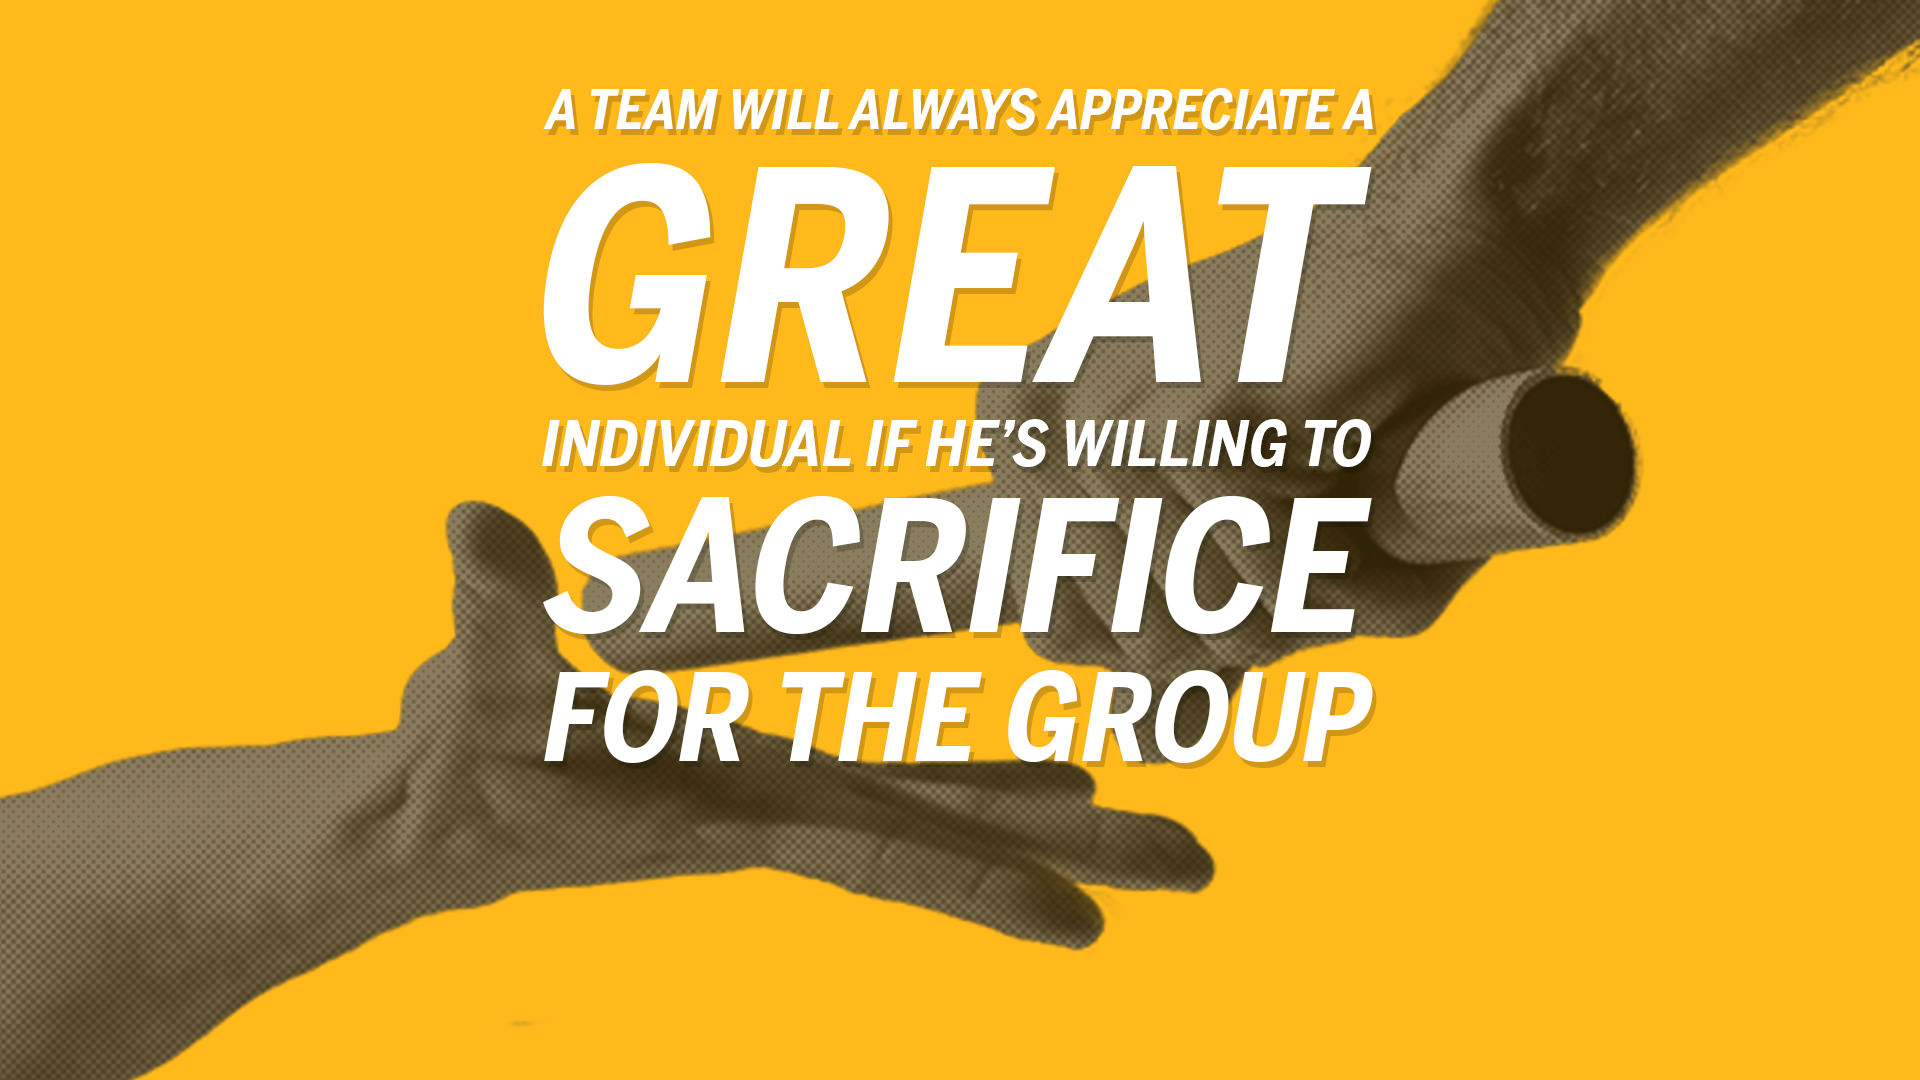 Great Inspirational Quotes 50 Inspirational Quotes About Teamwork And Sportsmanship